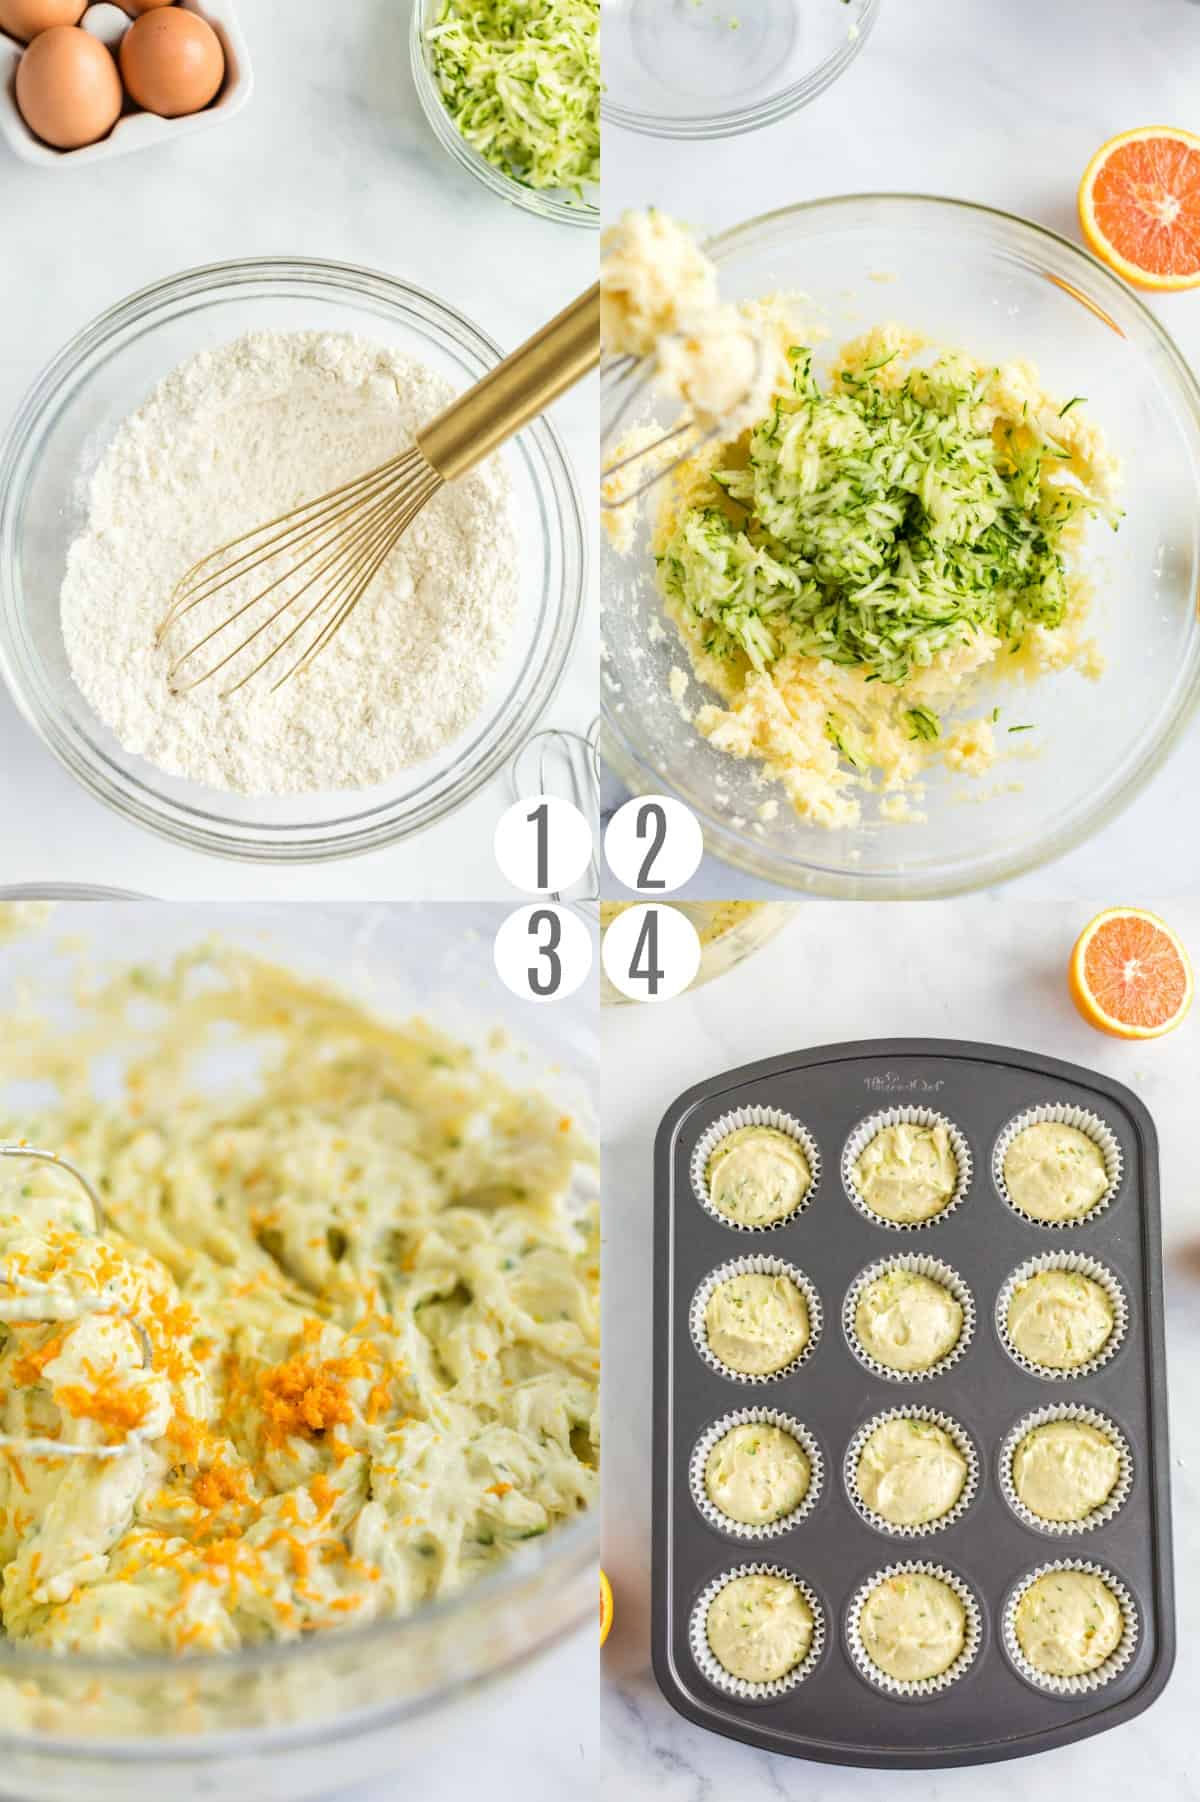 Step by step photos showing how to make zucchini orange muffins.